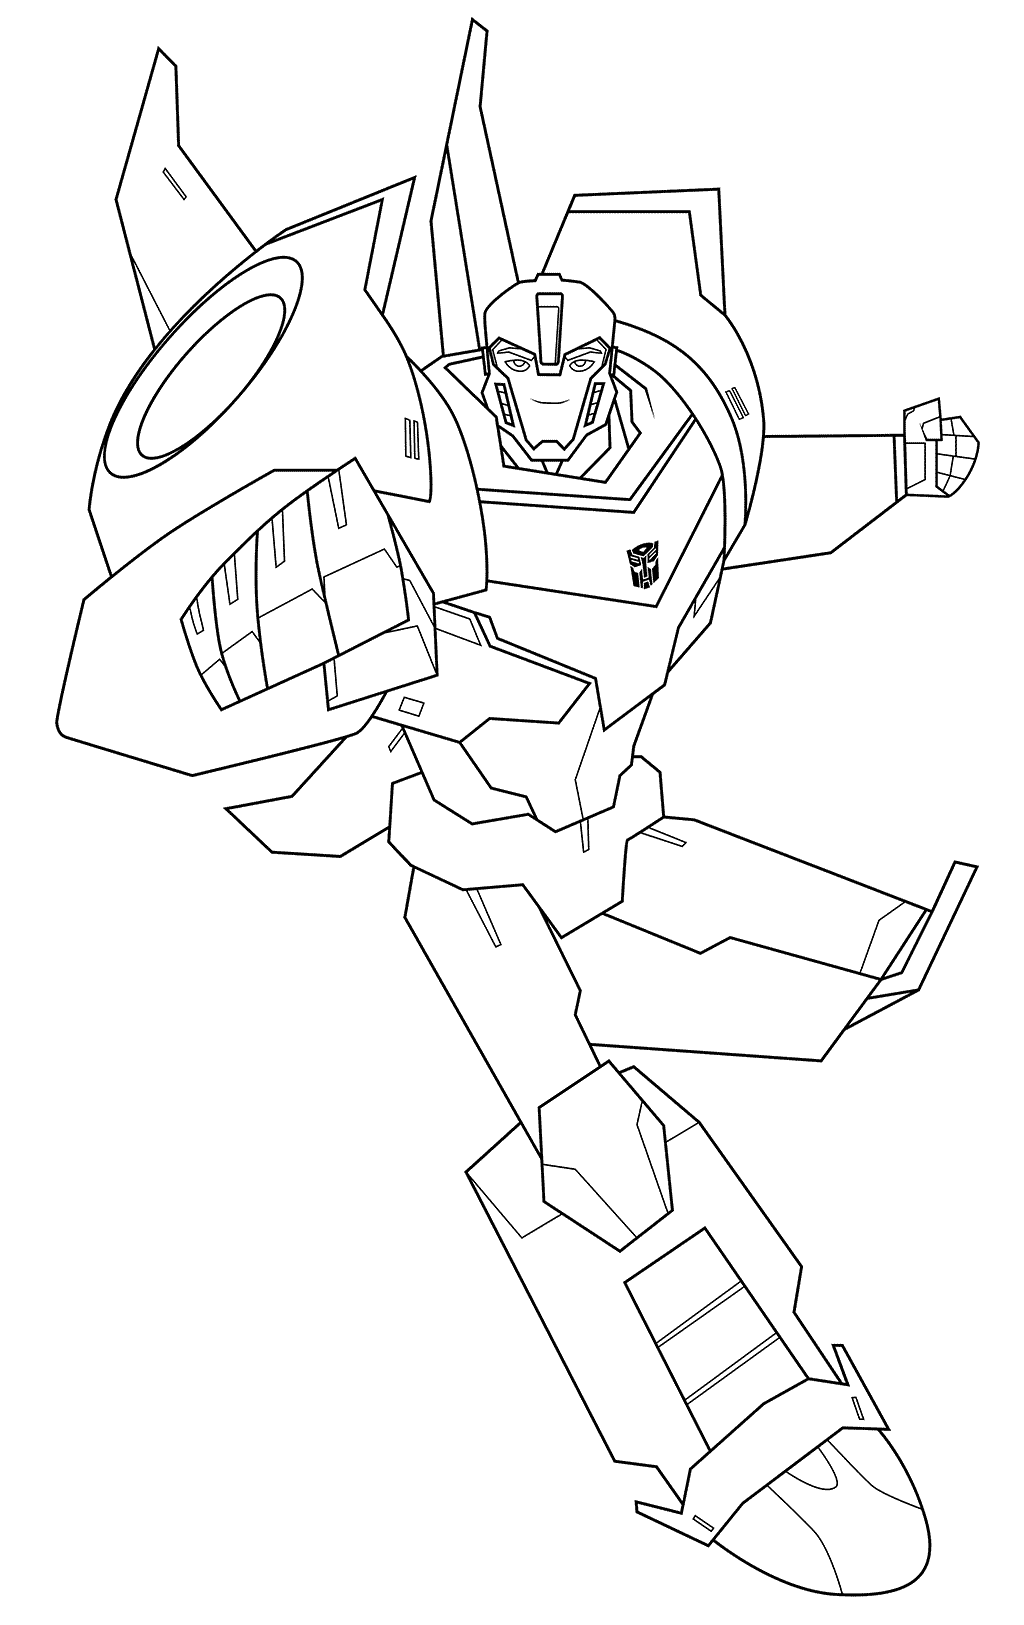 transformers bumblebee coloring pages bumblebee transformer coloring page unique bumble bee coloring pages transformers bumblebee